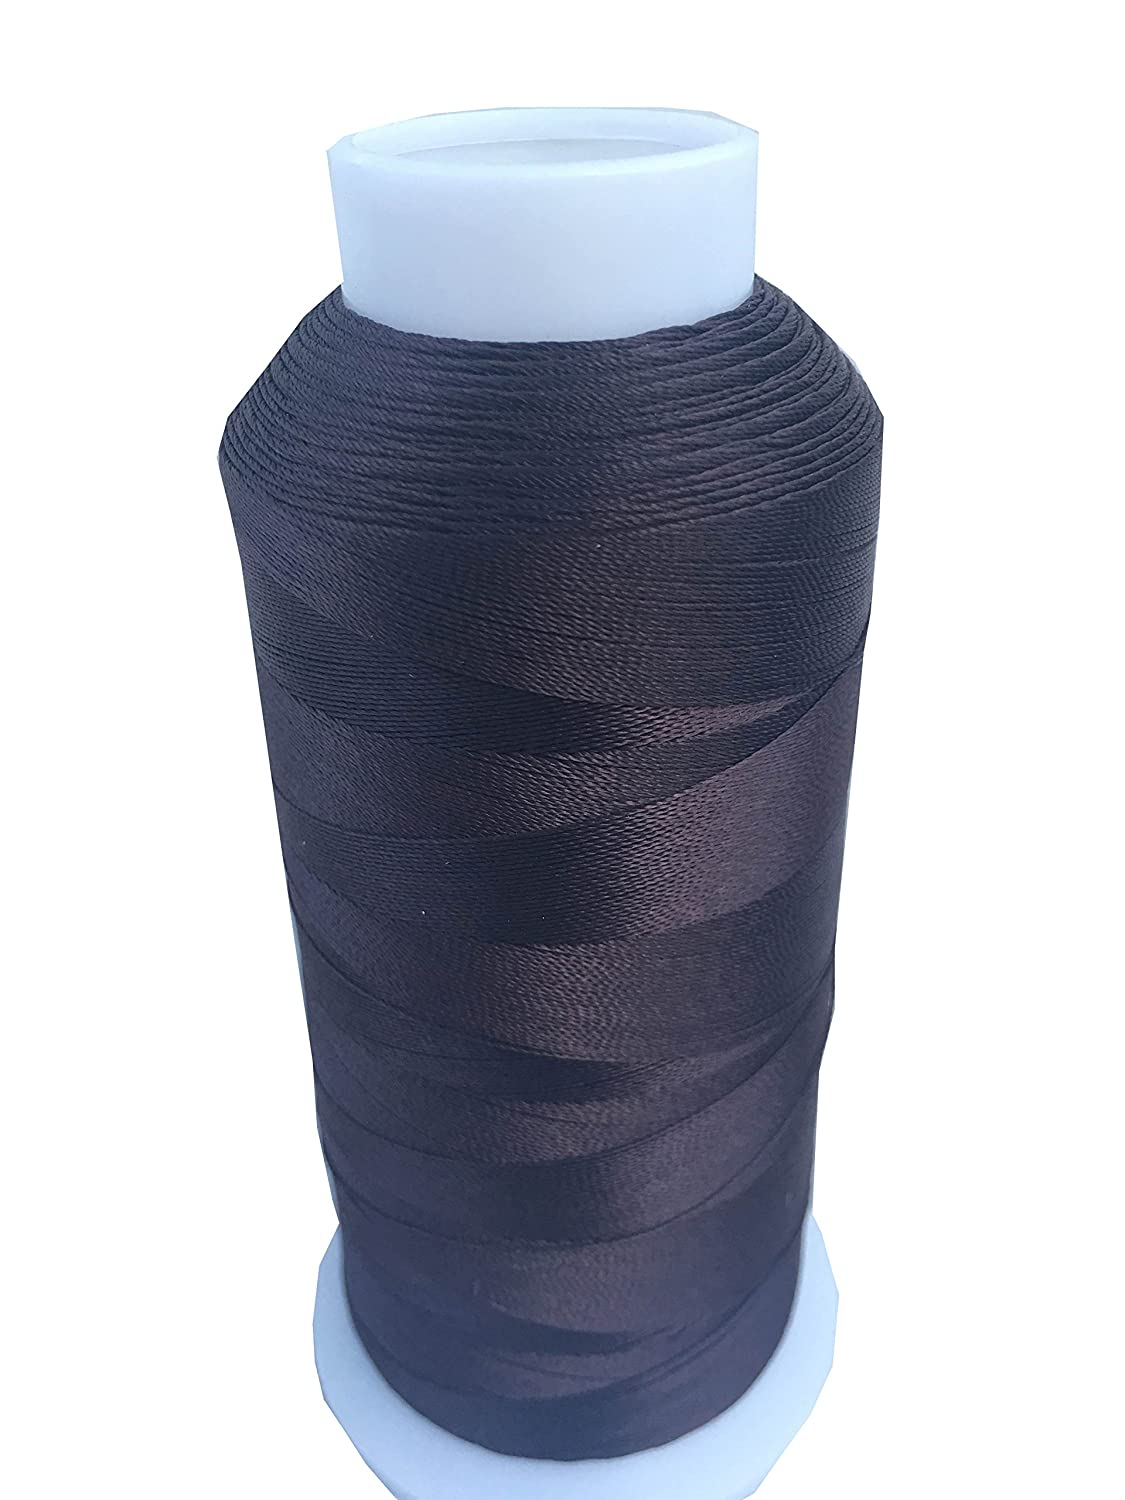 Item4ever UV Resistant Polyester Thread for Outdoor Leather Upholstered (Large, White)